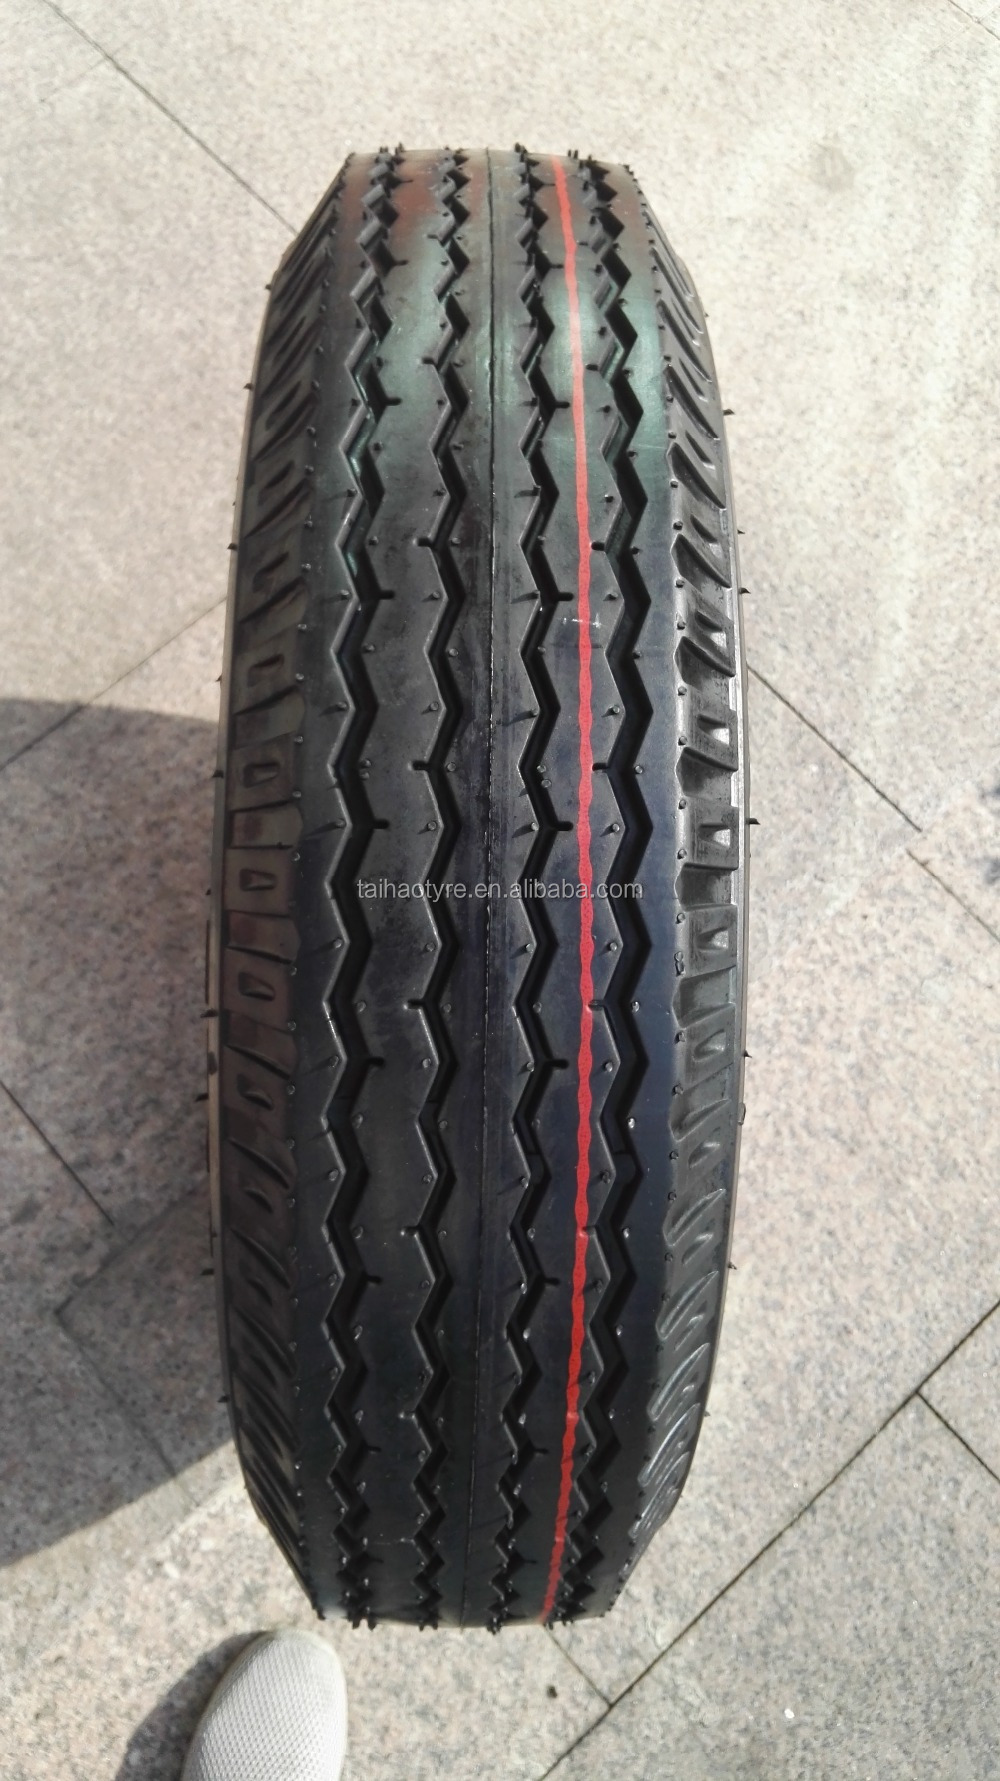 China Tyre Manufacturer 8-14.5 Mobile Home Tyre 10.00-20 11-22.5 ...